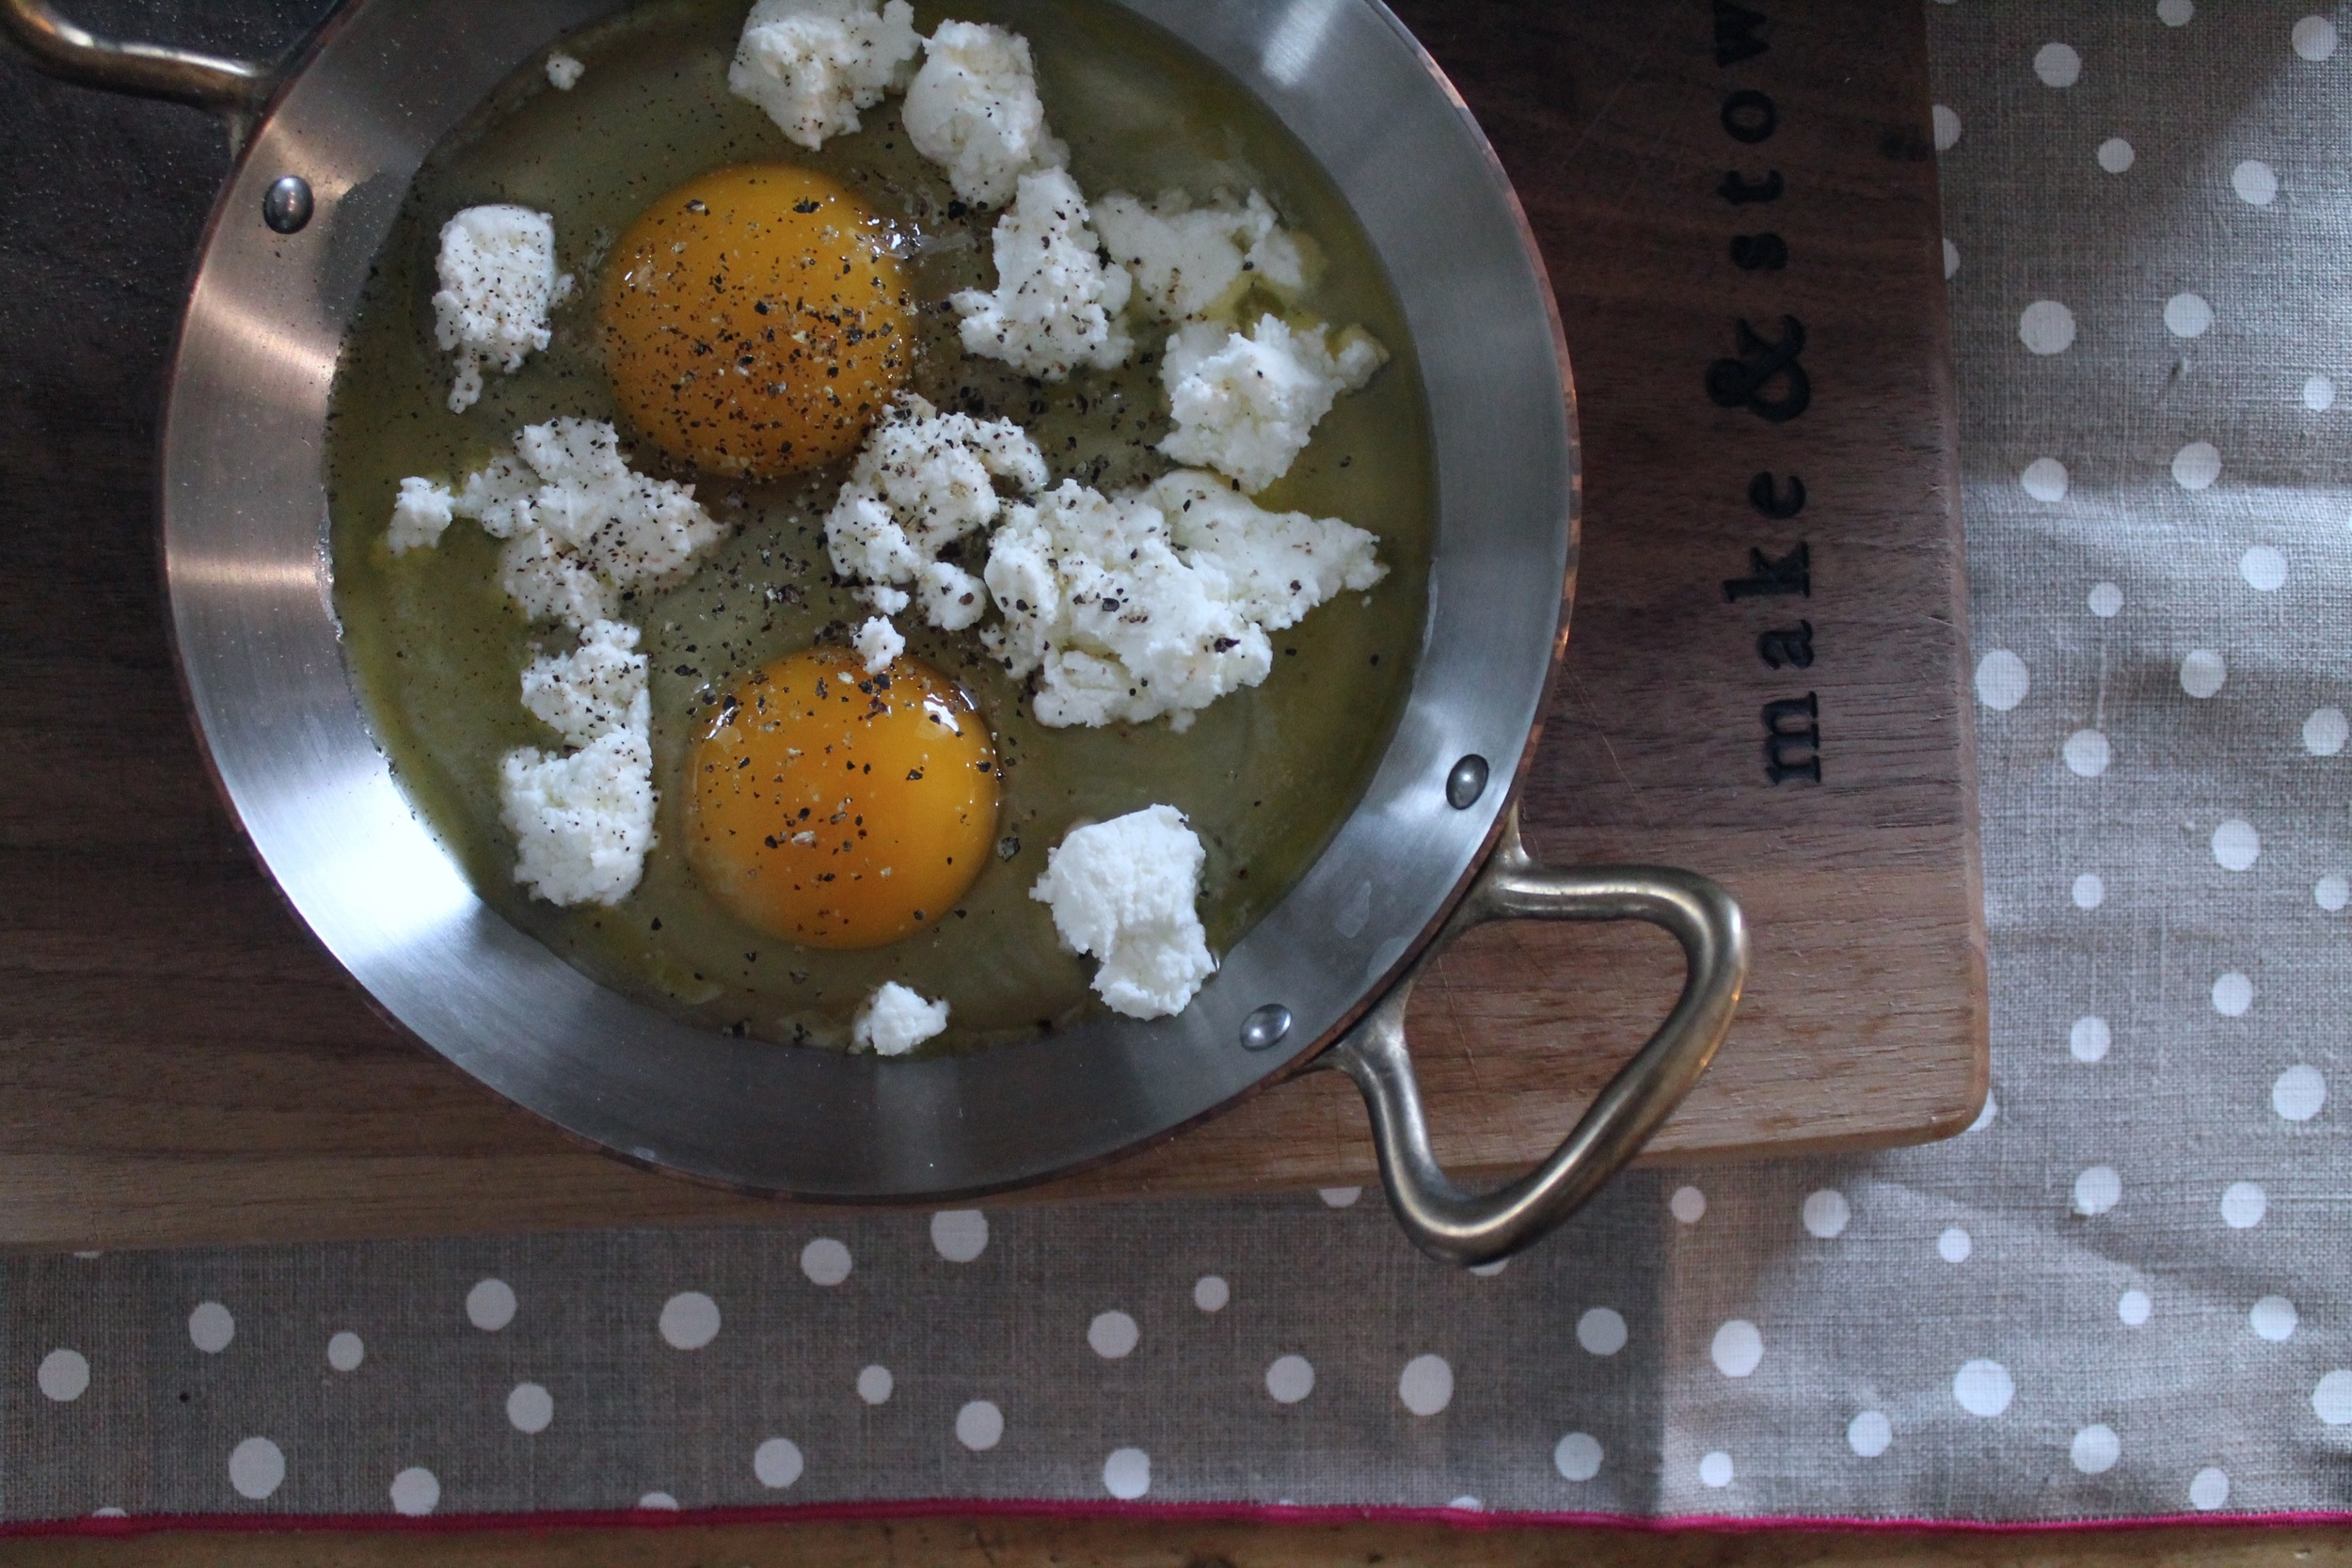 Baked Eggs with Chevre + Cilantro Chutney | www.hungryinlove.com